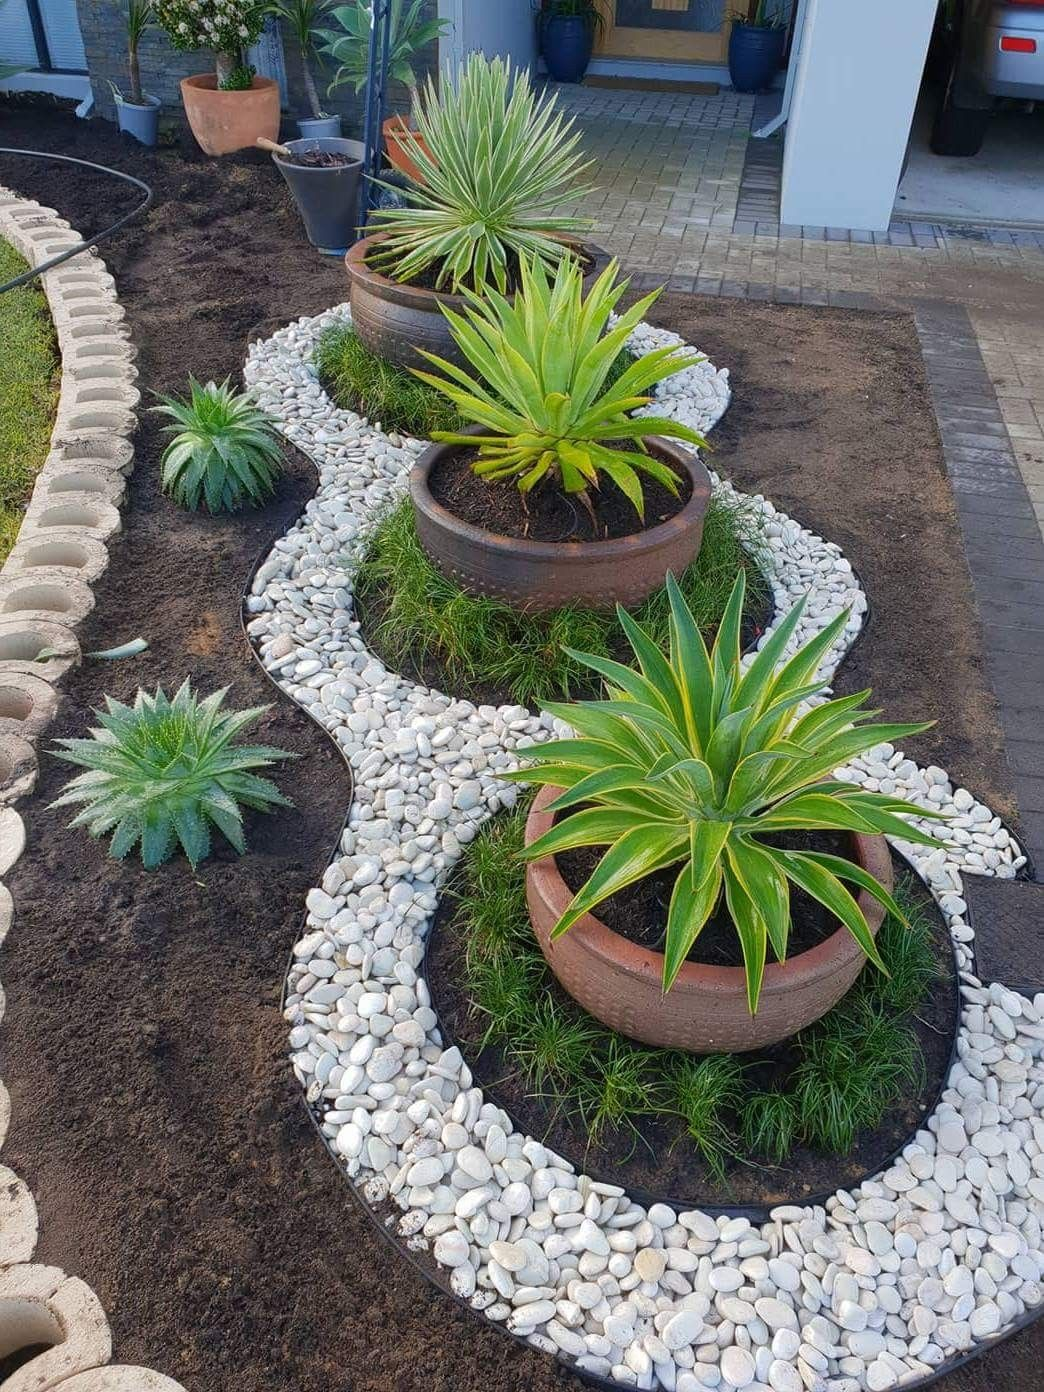 But Jardin Not Fond Of The Plants In This But Love The Idea Jardines